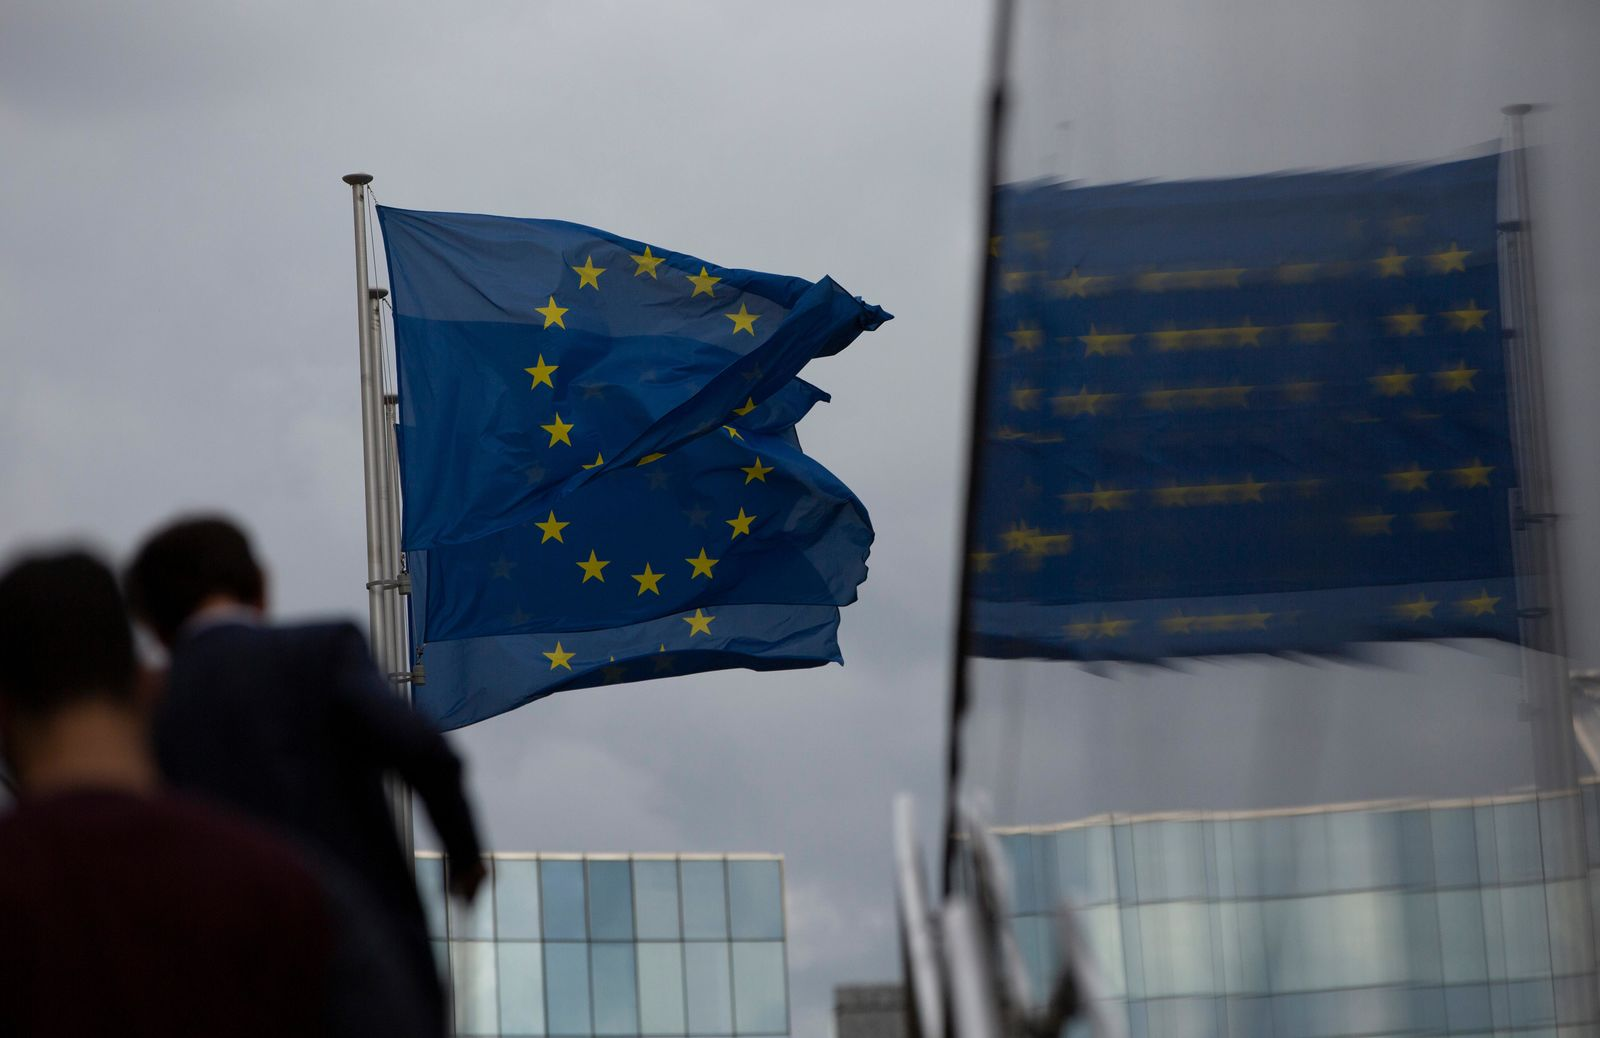 European Union flags flap in the wind as two people walk up a set of stairs outside EU headquarters in Brussels, Sunday, Oct. 13, 2019. (AP Photo/Virginia Mayo)